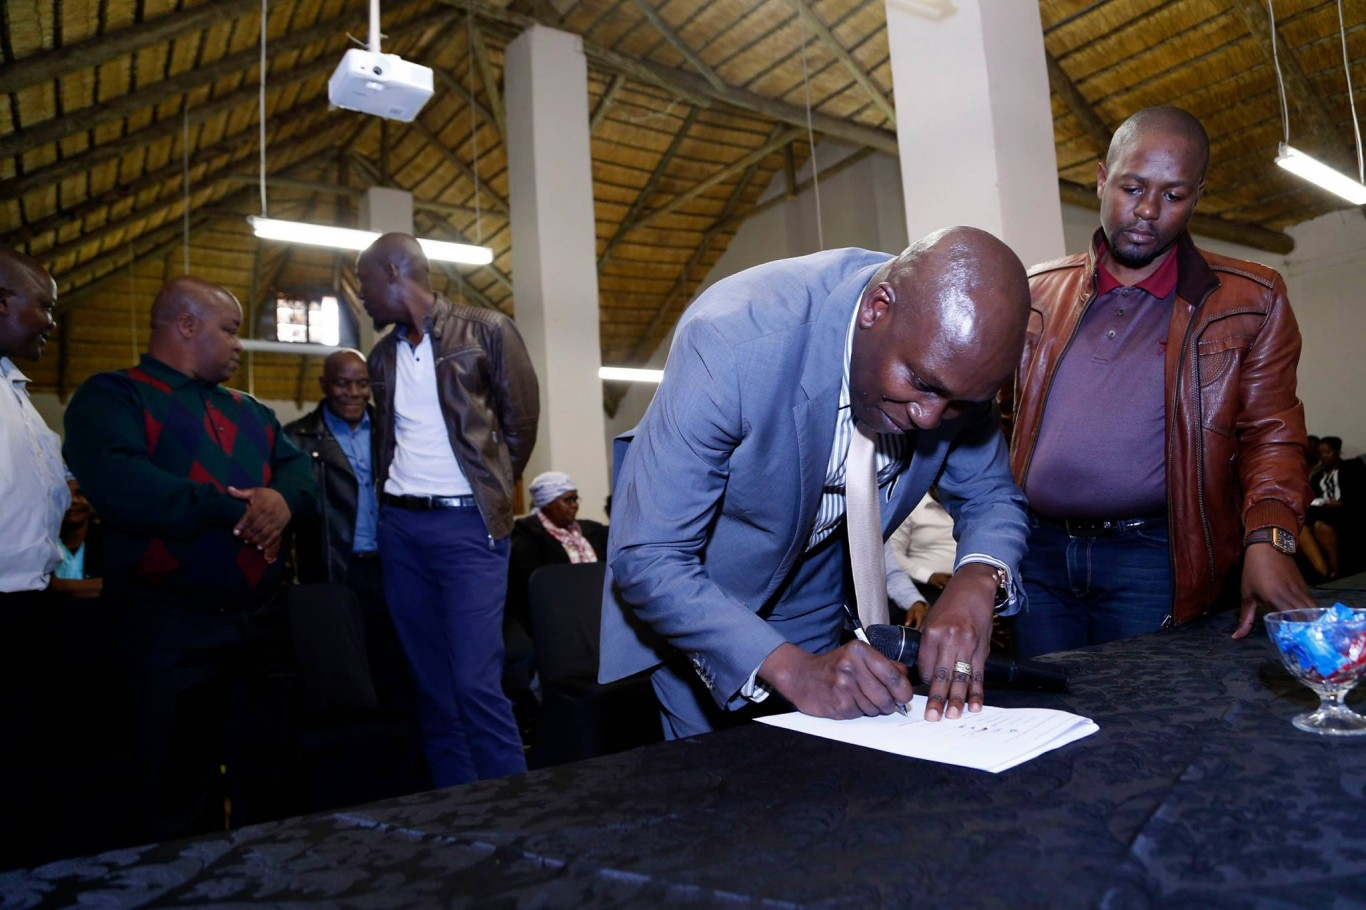 Memorandum of Understanding (MOU) signed with members of the Nongoma Taxi Association